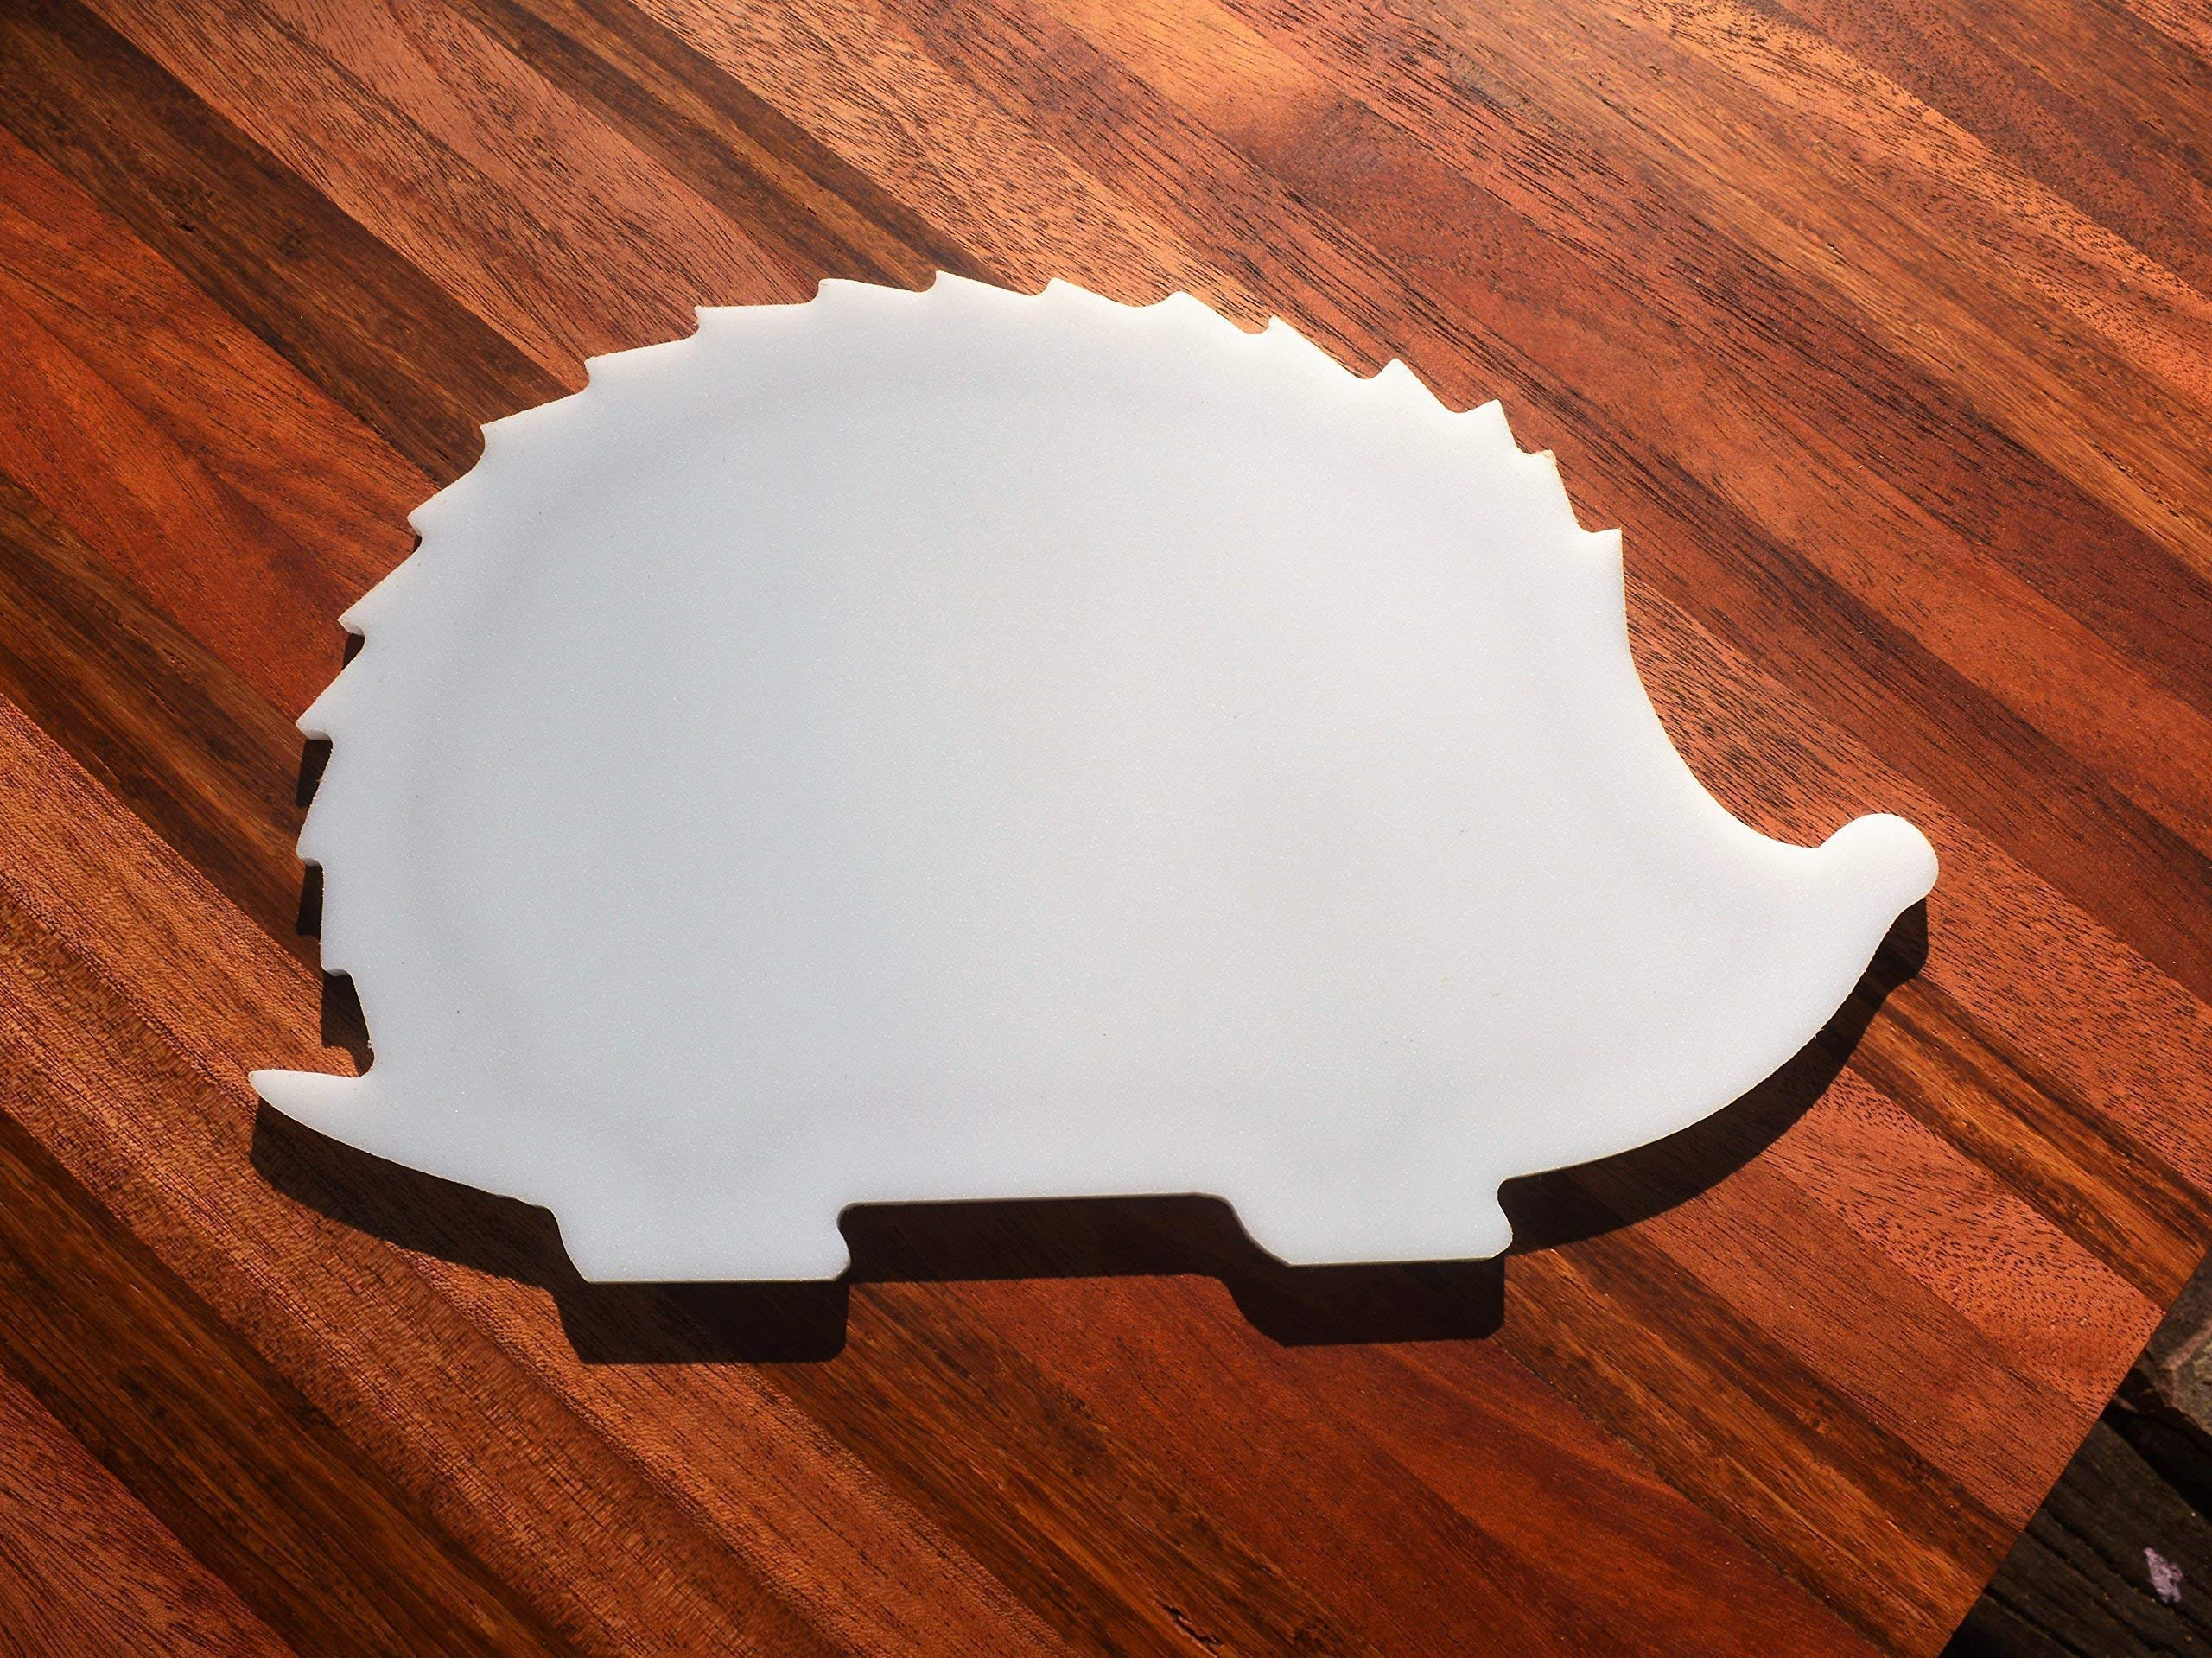 NEW HIGH QUALITY - Hedgehog Shaped White Plastic HDPE Cutting Board 11x7 Animal Lovers Dishwasher Safe FREE FAST SHIPPING! by With the Grain Woodworks (Image #4)